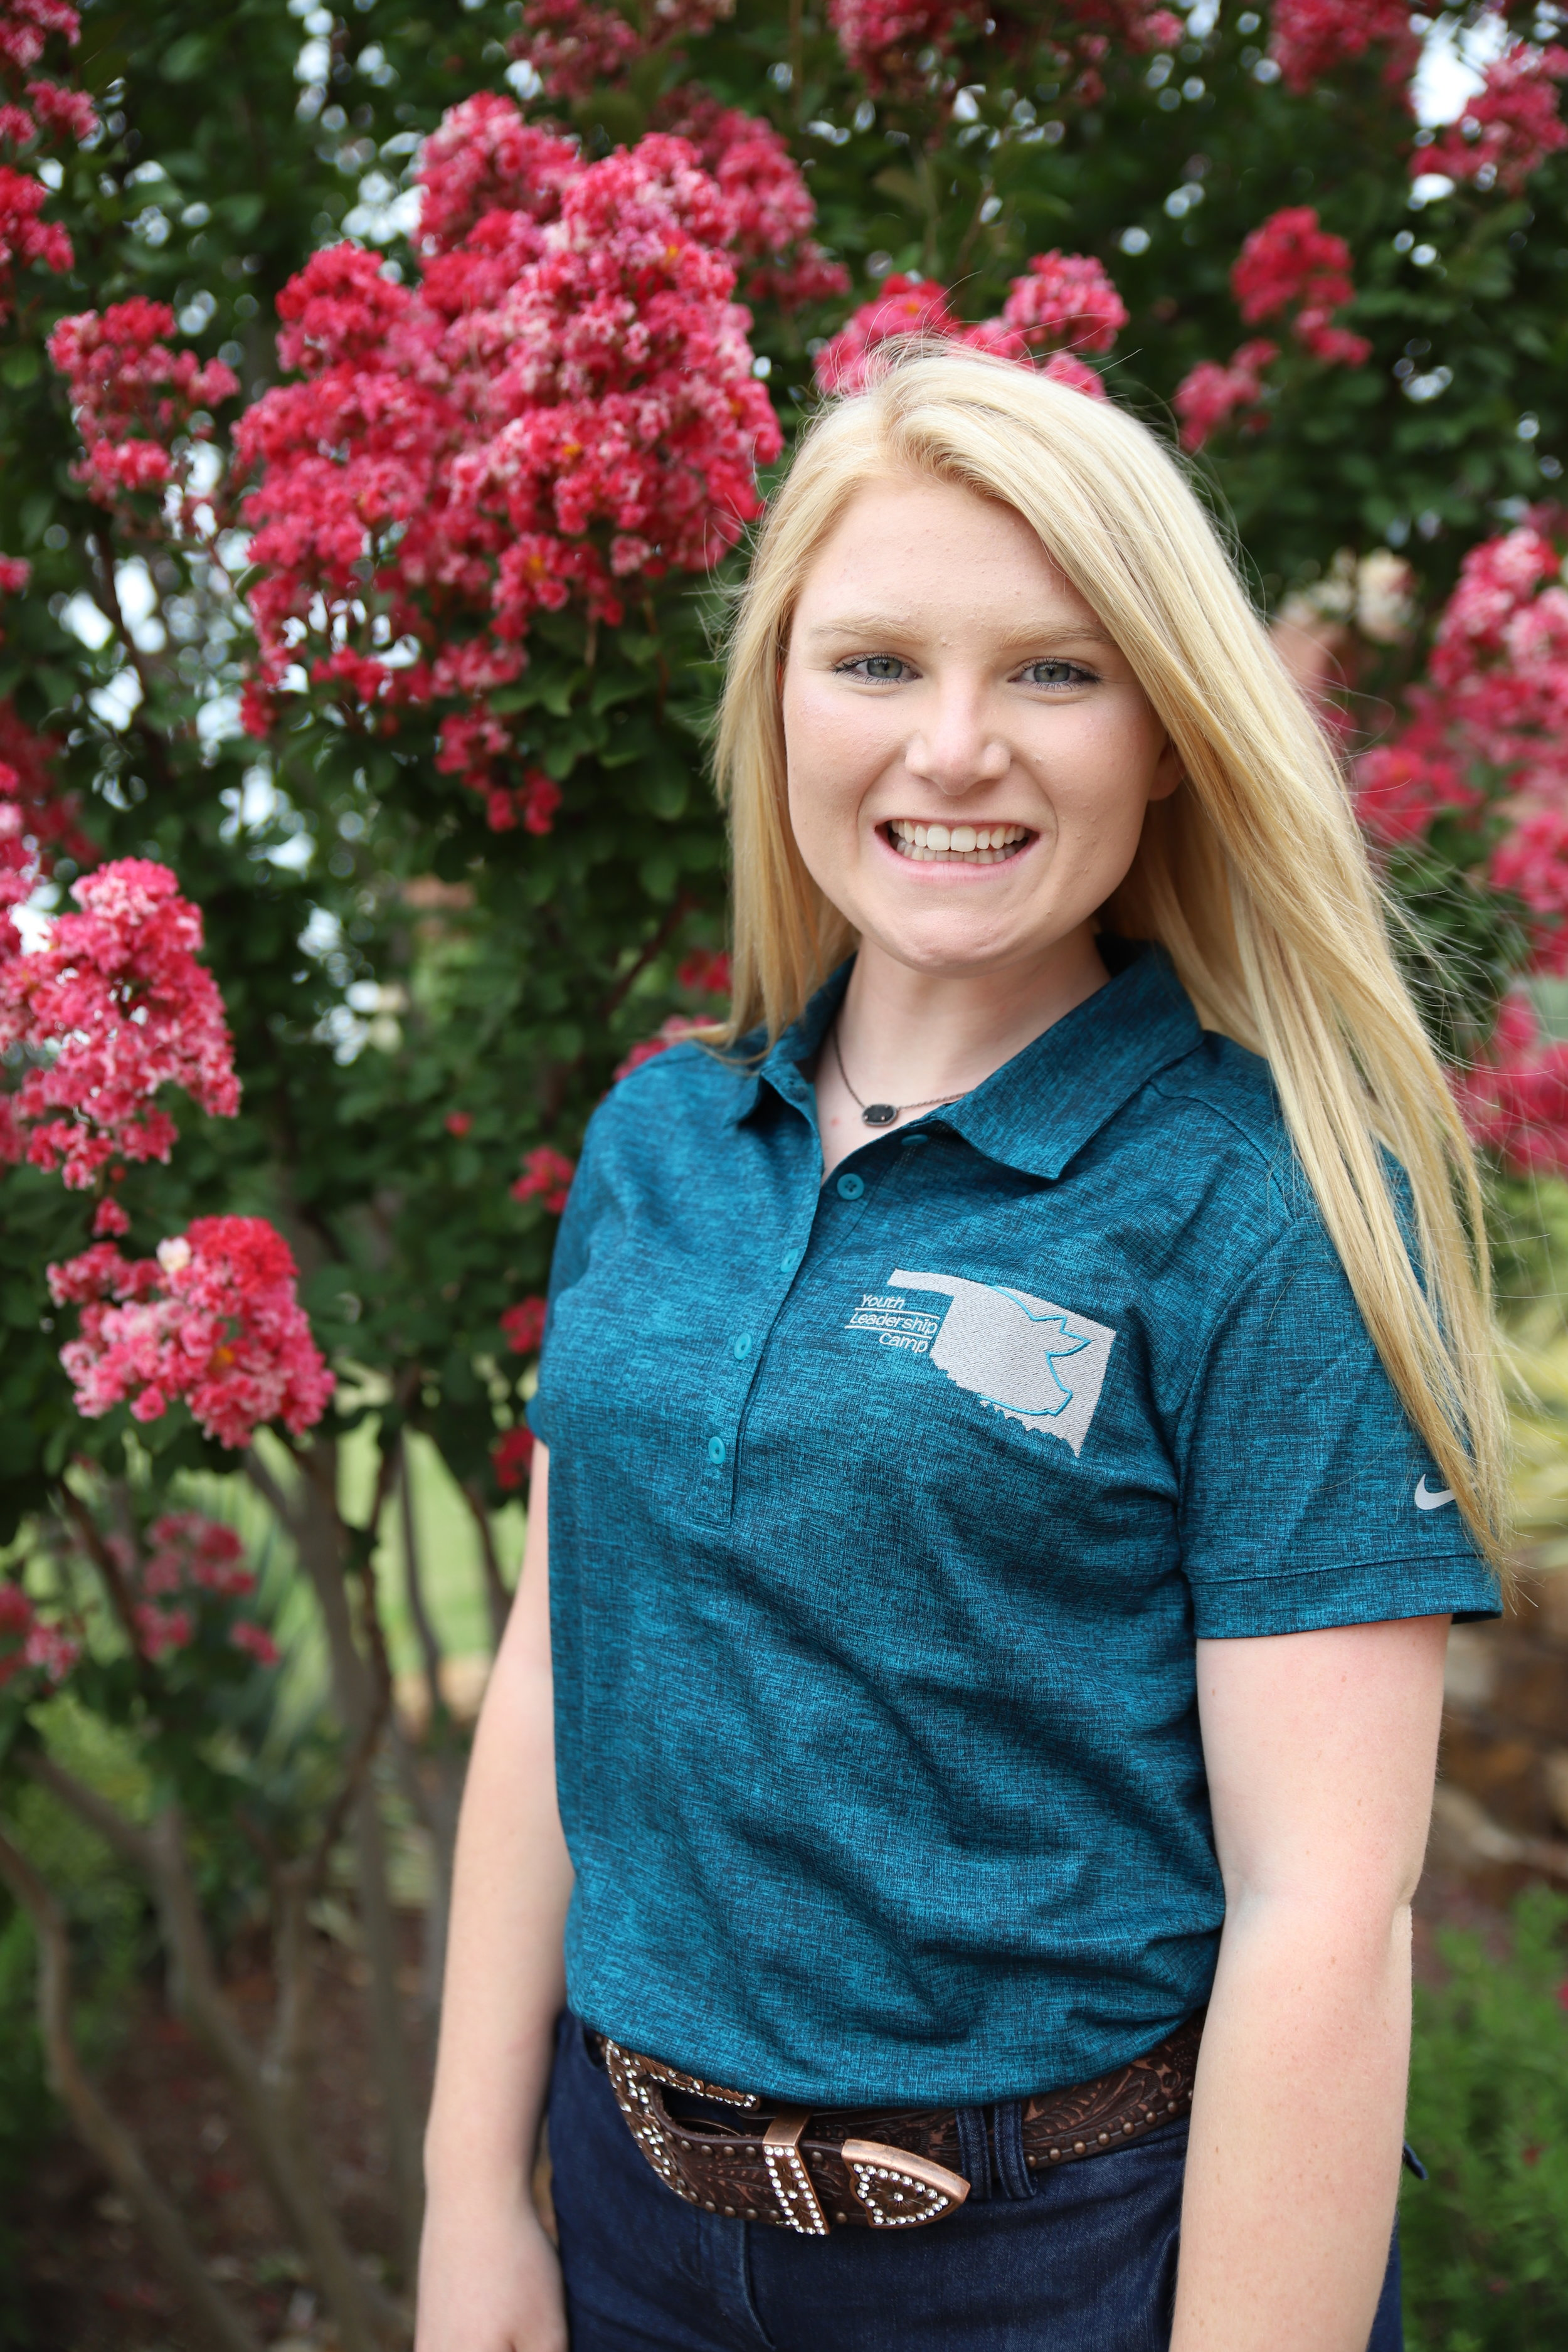 """""""I didn't realize the commercial swine industry was as large at it is, but I appreciate what the industry is doing to produce a safe and affordable protein source,"""" said McKenzie Holman, Kiefer, Okla."""